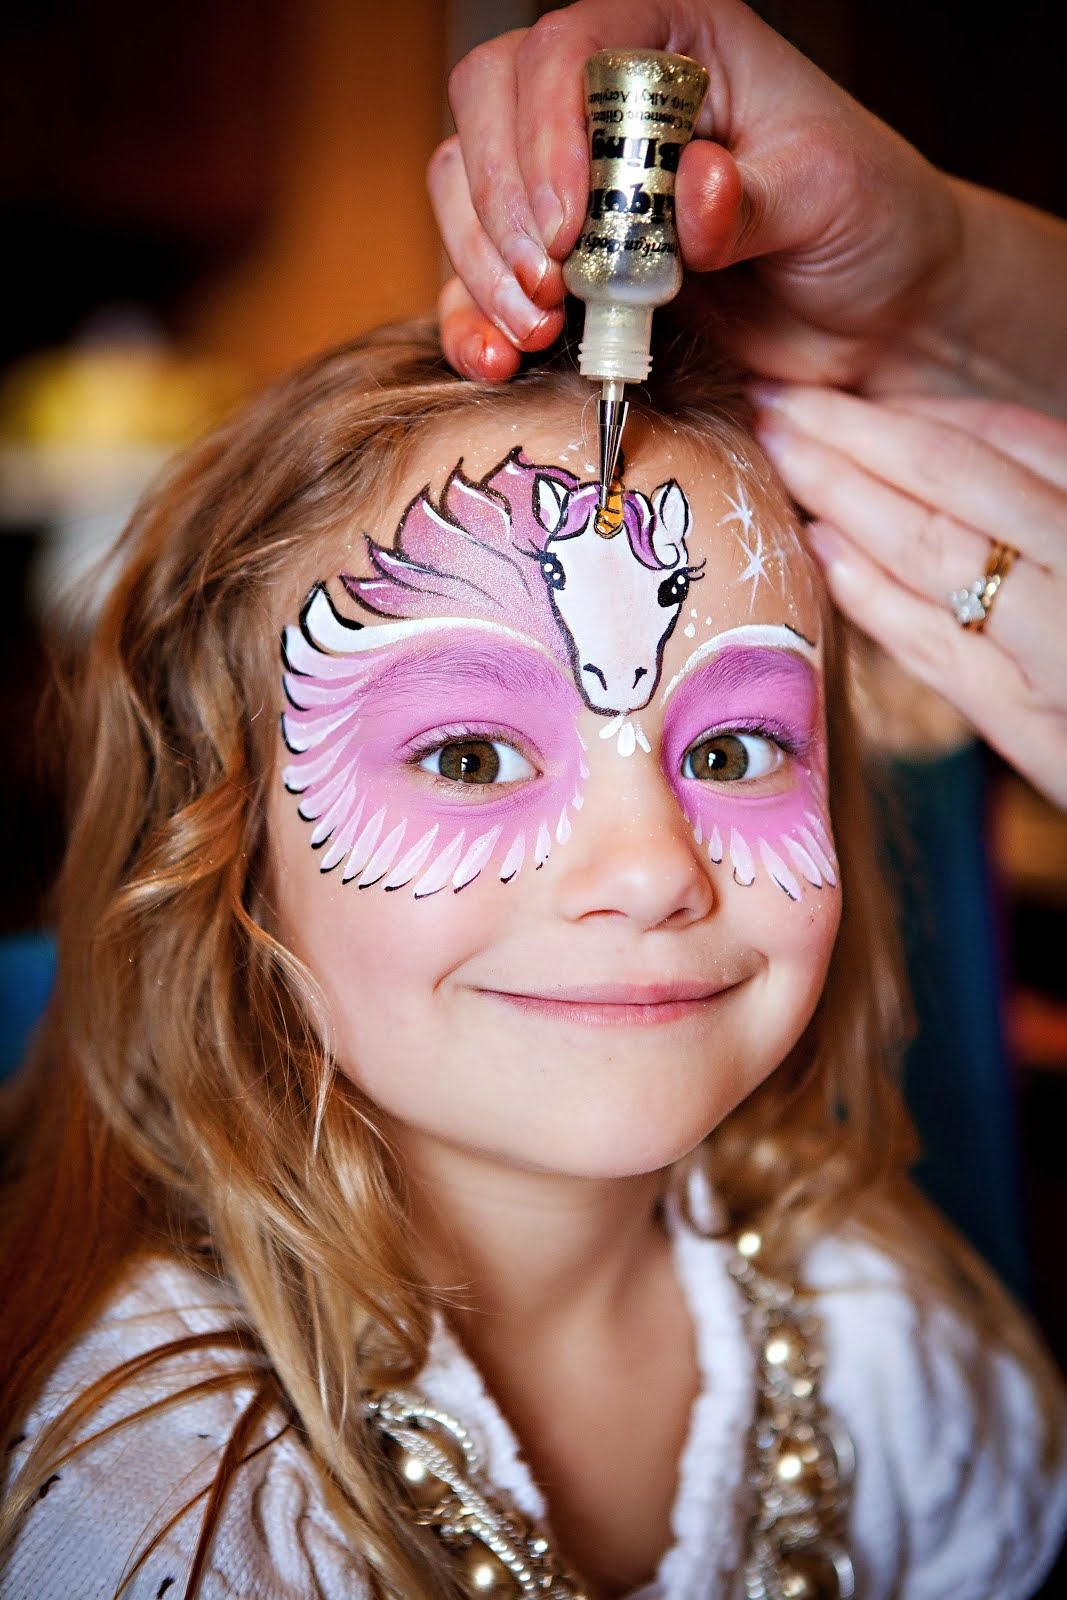 Facepainting service